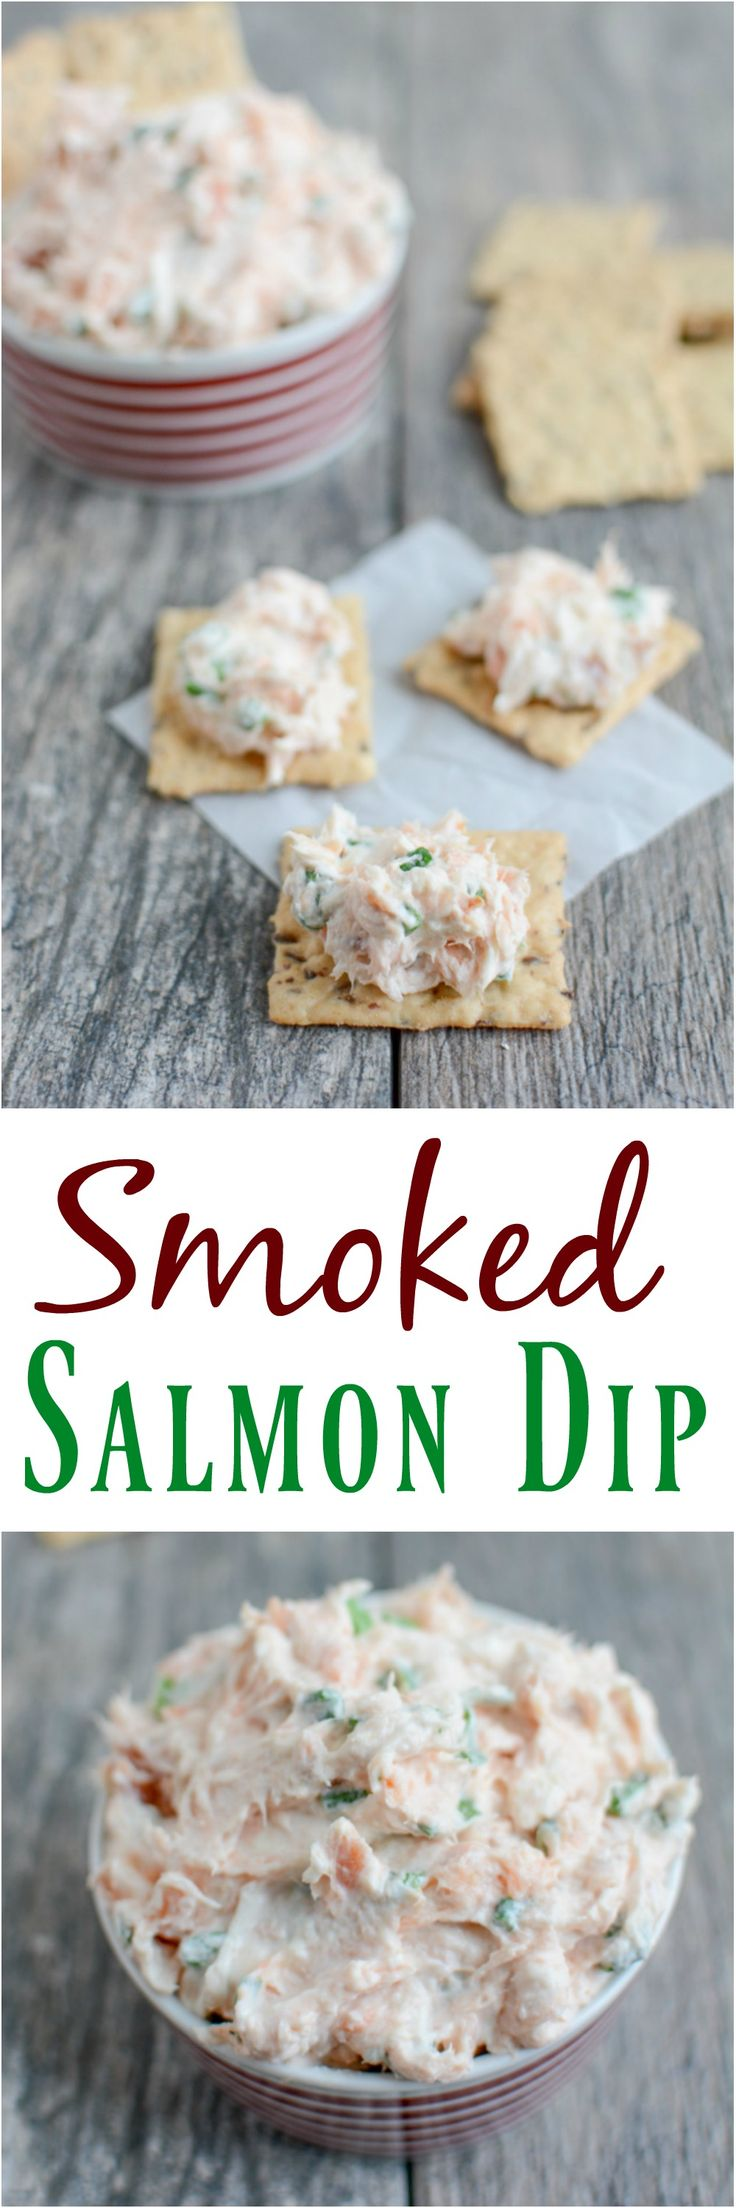 This Easy Smoked Salmon Dip recipe is the perfect appetizer for your next party. It's quick, easy and full of flavor and also makes a great snack!